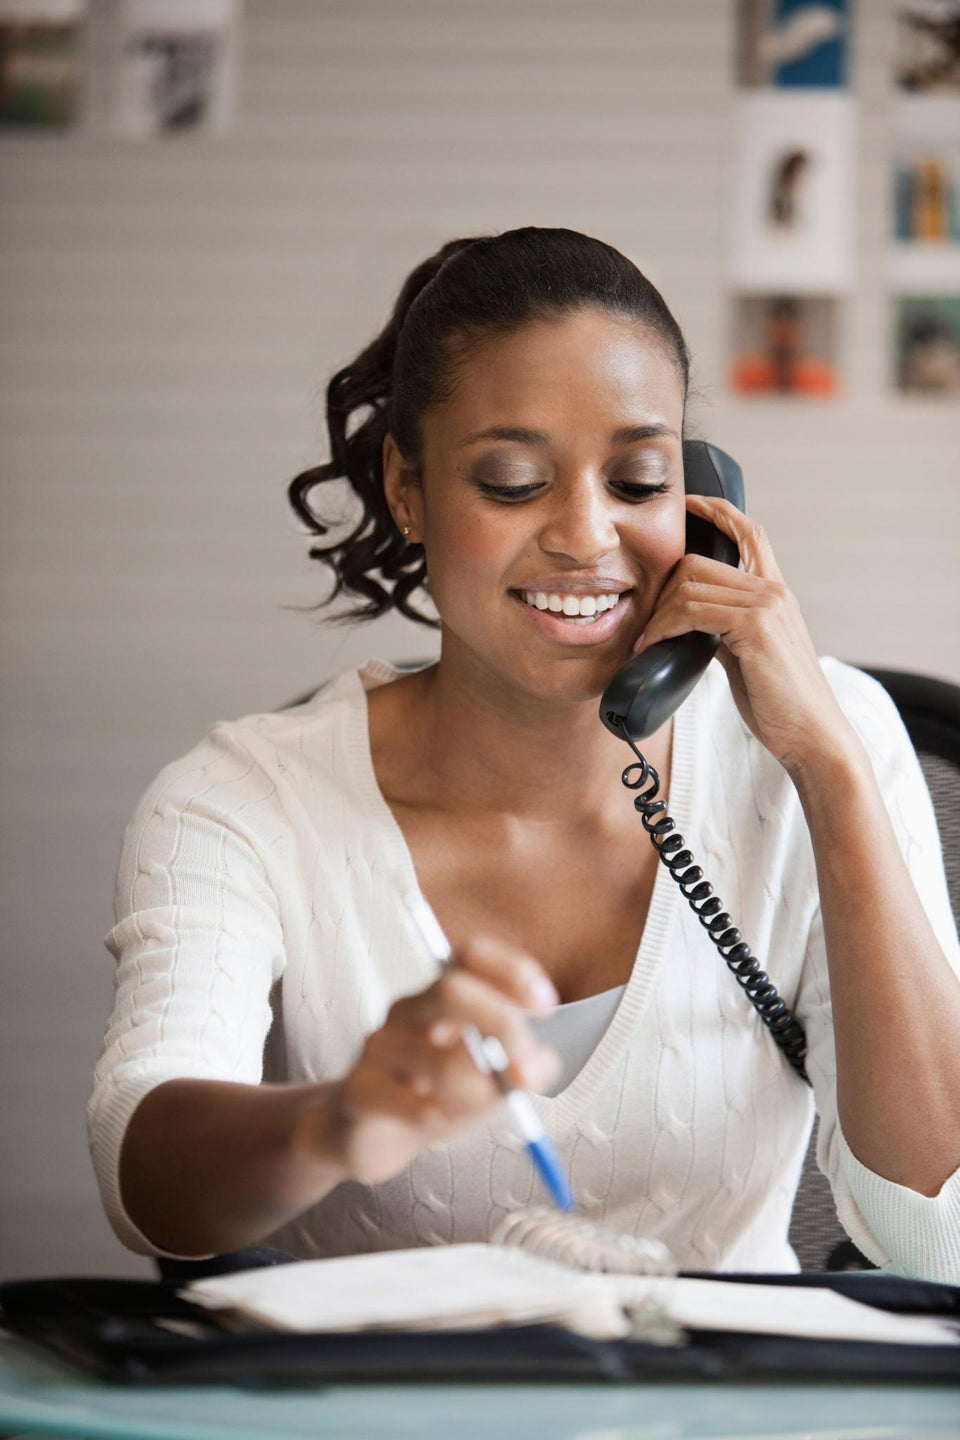 ESSENCE POll: What Does Your Ideal Work Week Look Like?